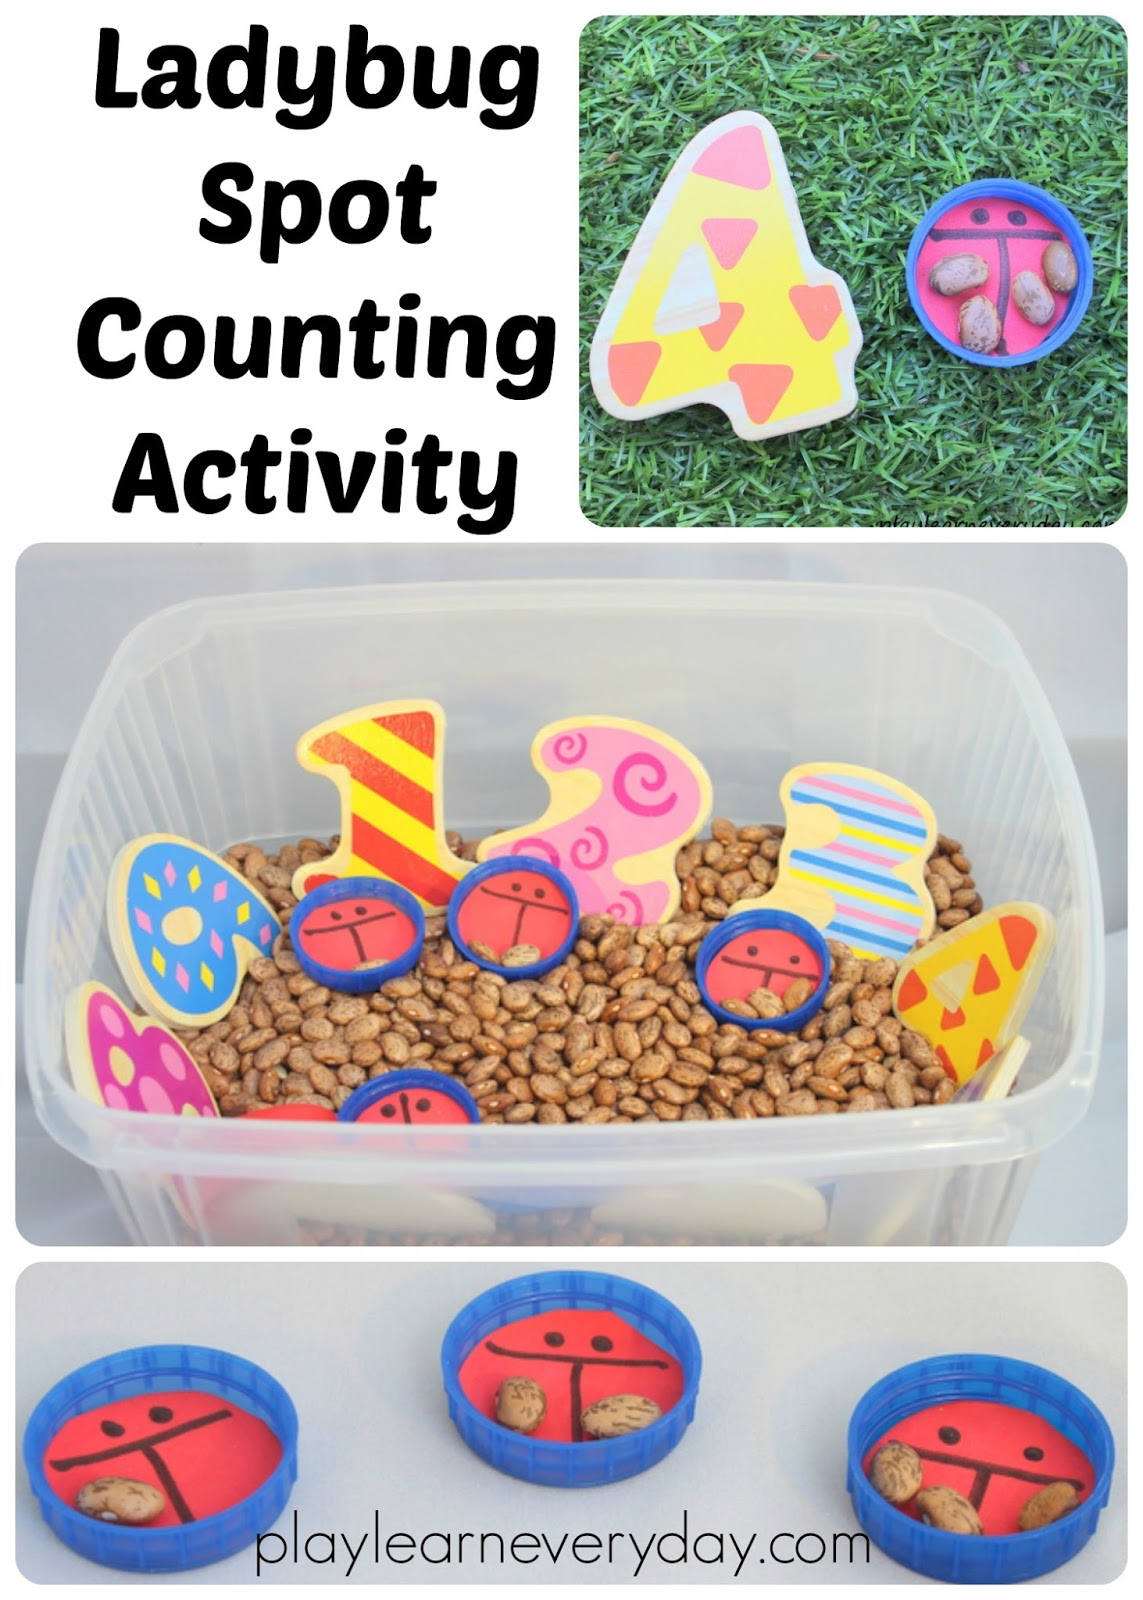 Ladybug Spot Counting Activity